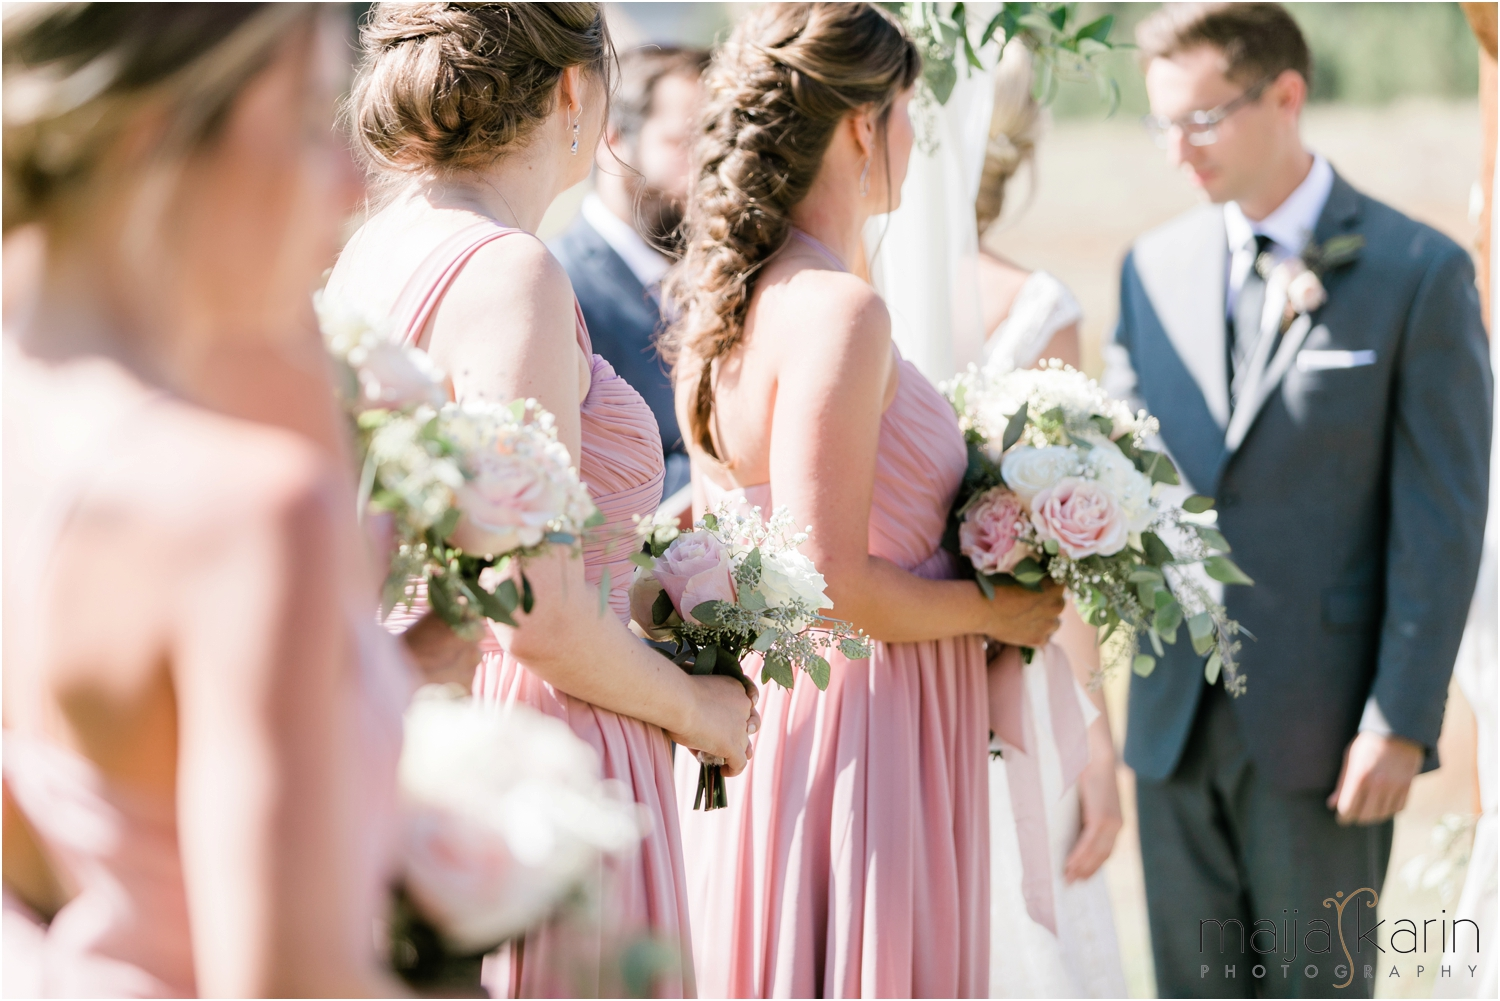 McCall-Idaho-Wedding-Maija-Karin-Photography_0034.jpg